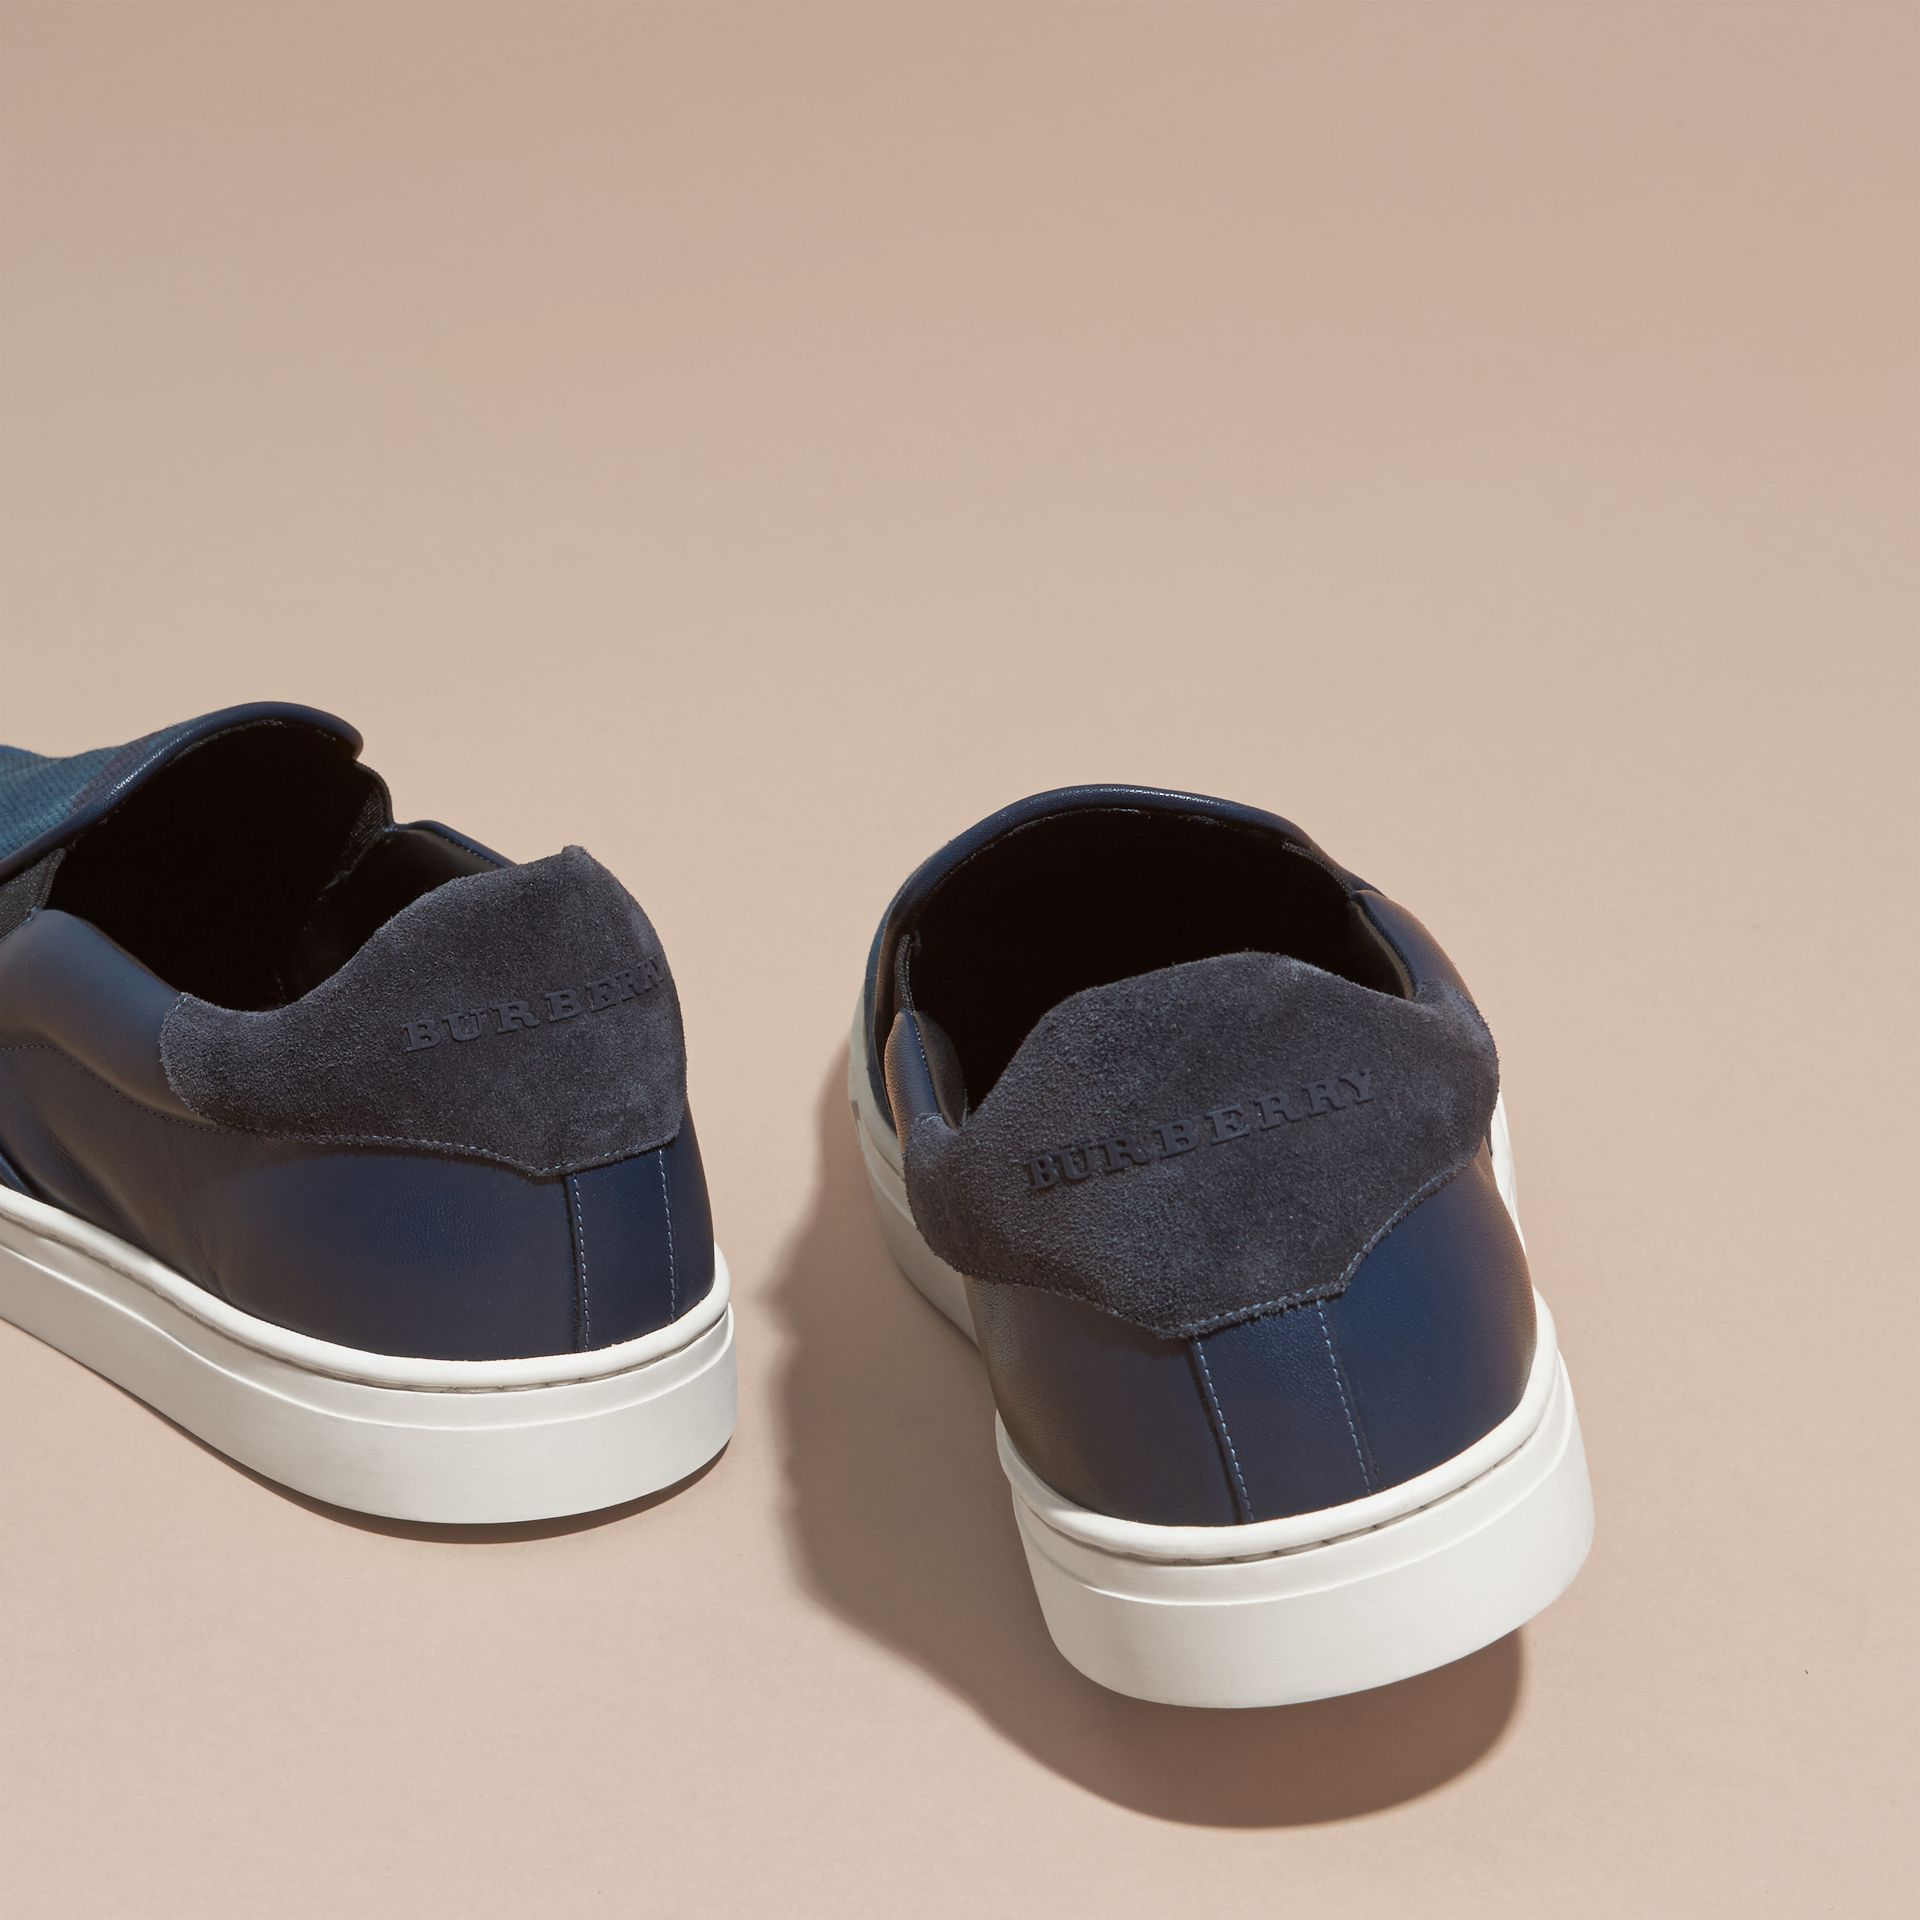 Ultramarine blue/blk Canvas Check and Leather Slip-on Trainers Ultramarine Blue/blk - gallery image 4